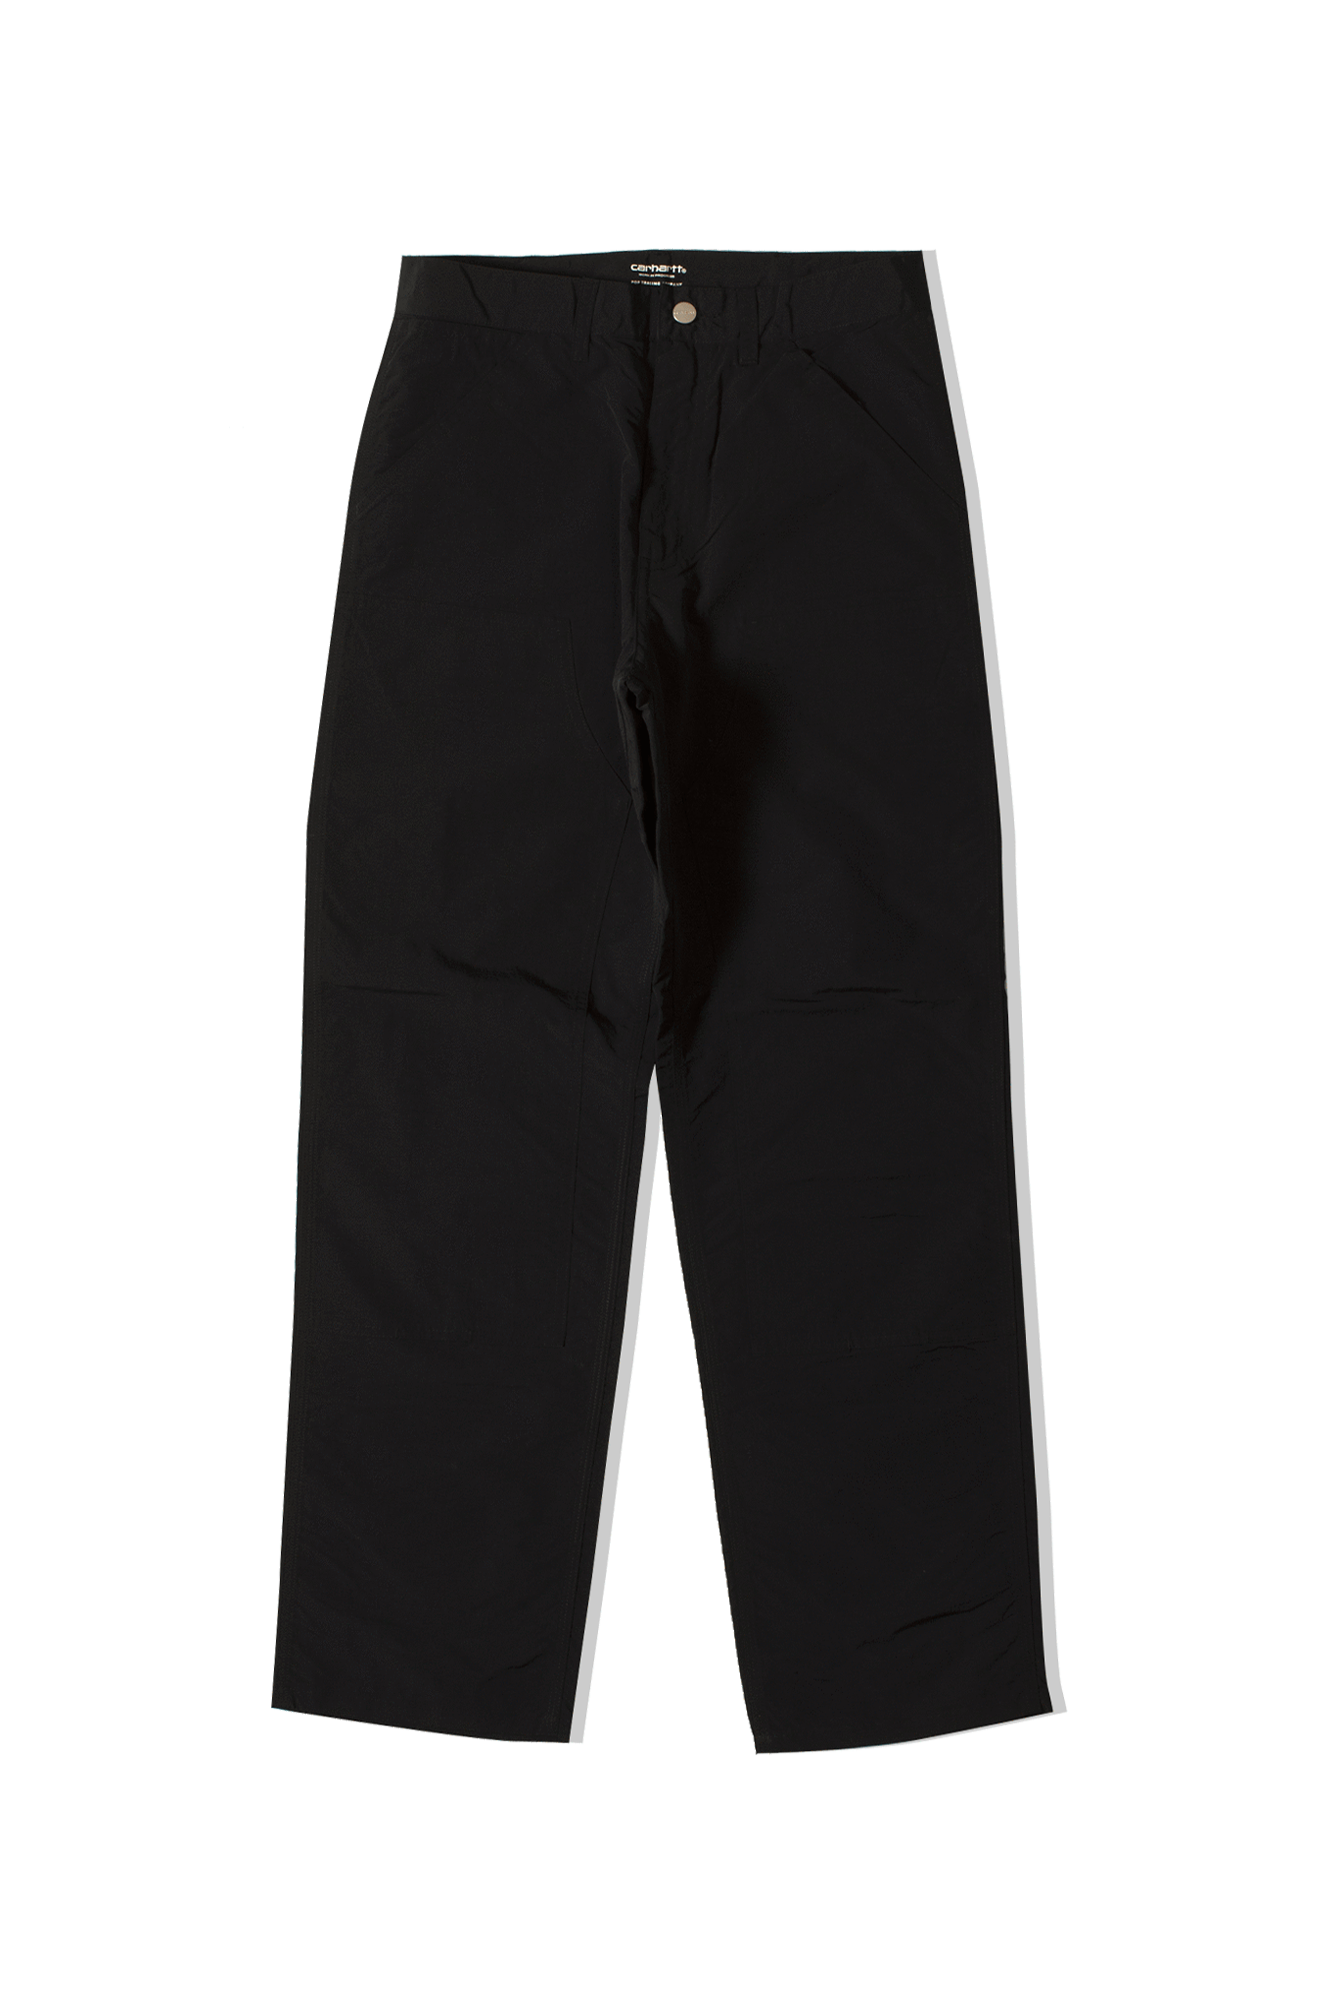 Double Knee Pants x Carhartt Black